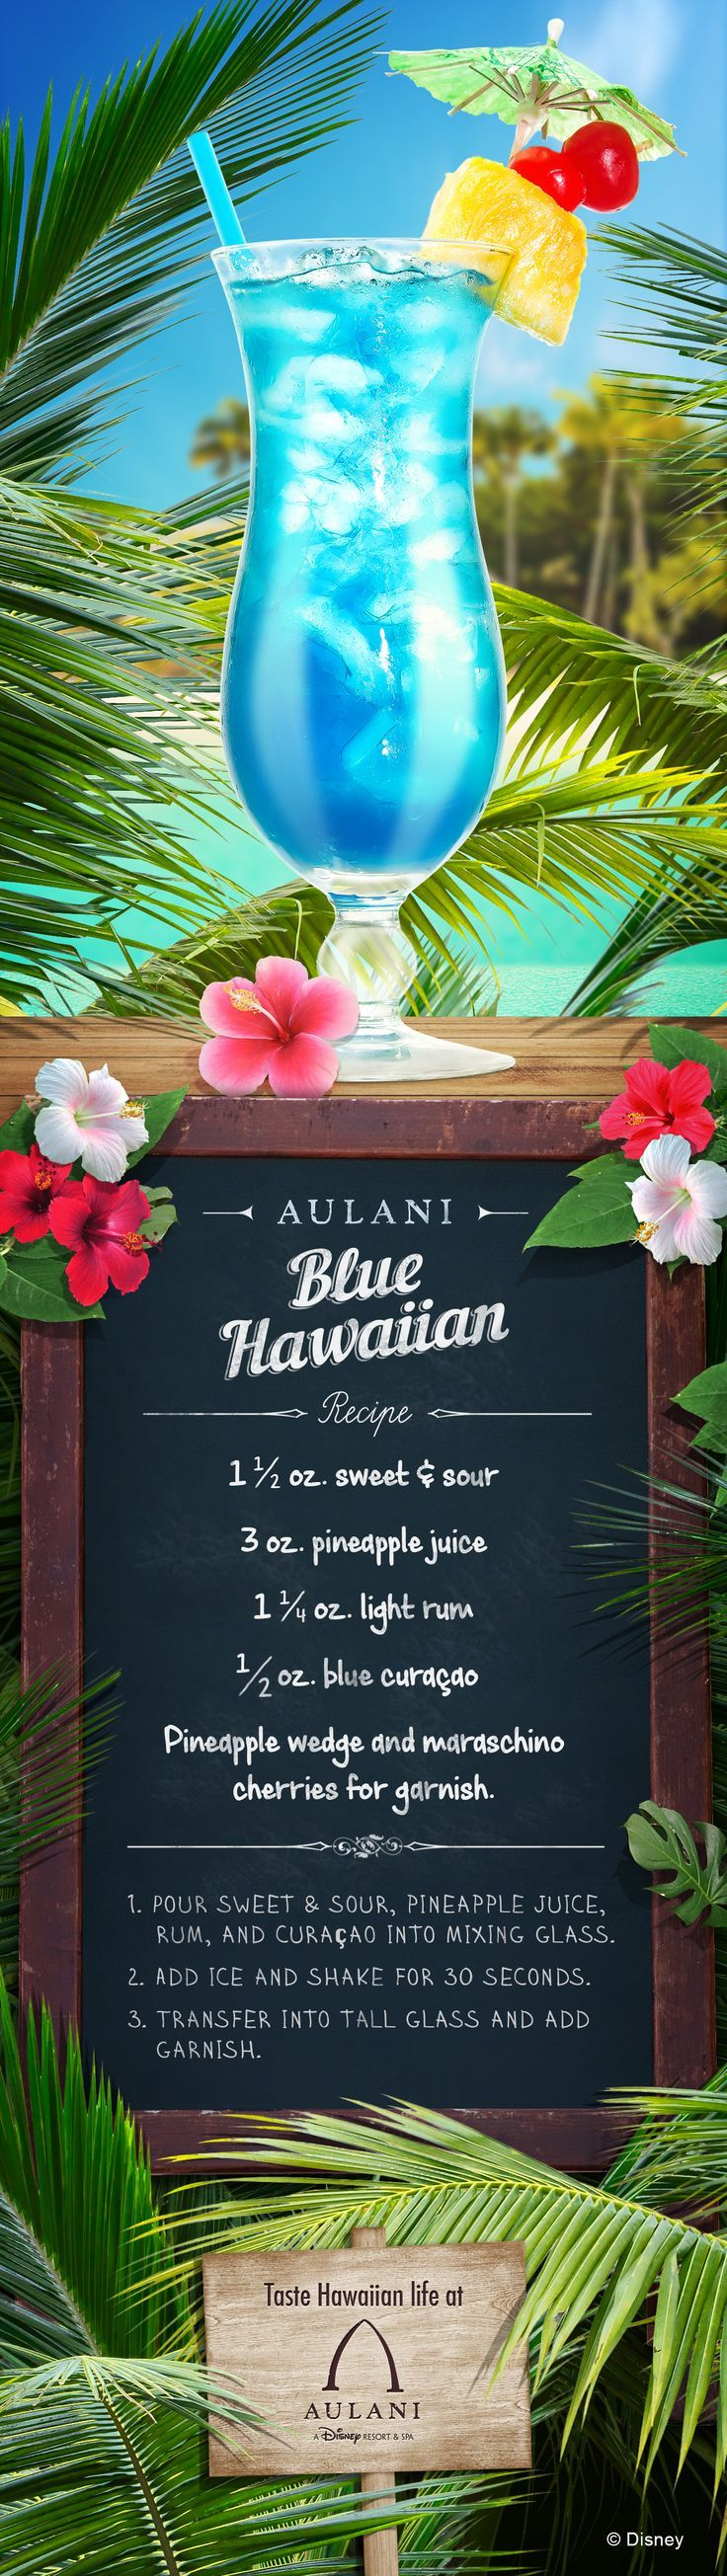 Feeling blue? A Blue Hawaiian just might be the cure! Give this light and refreshing cocktail recipe a try and bring the flavors of Hawaii and Aulani to your home!